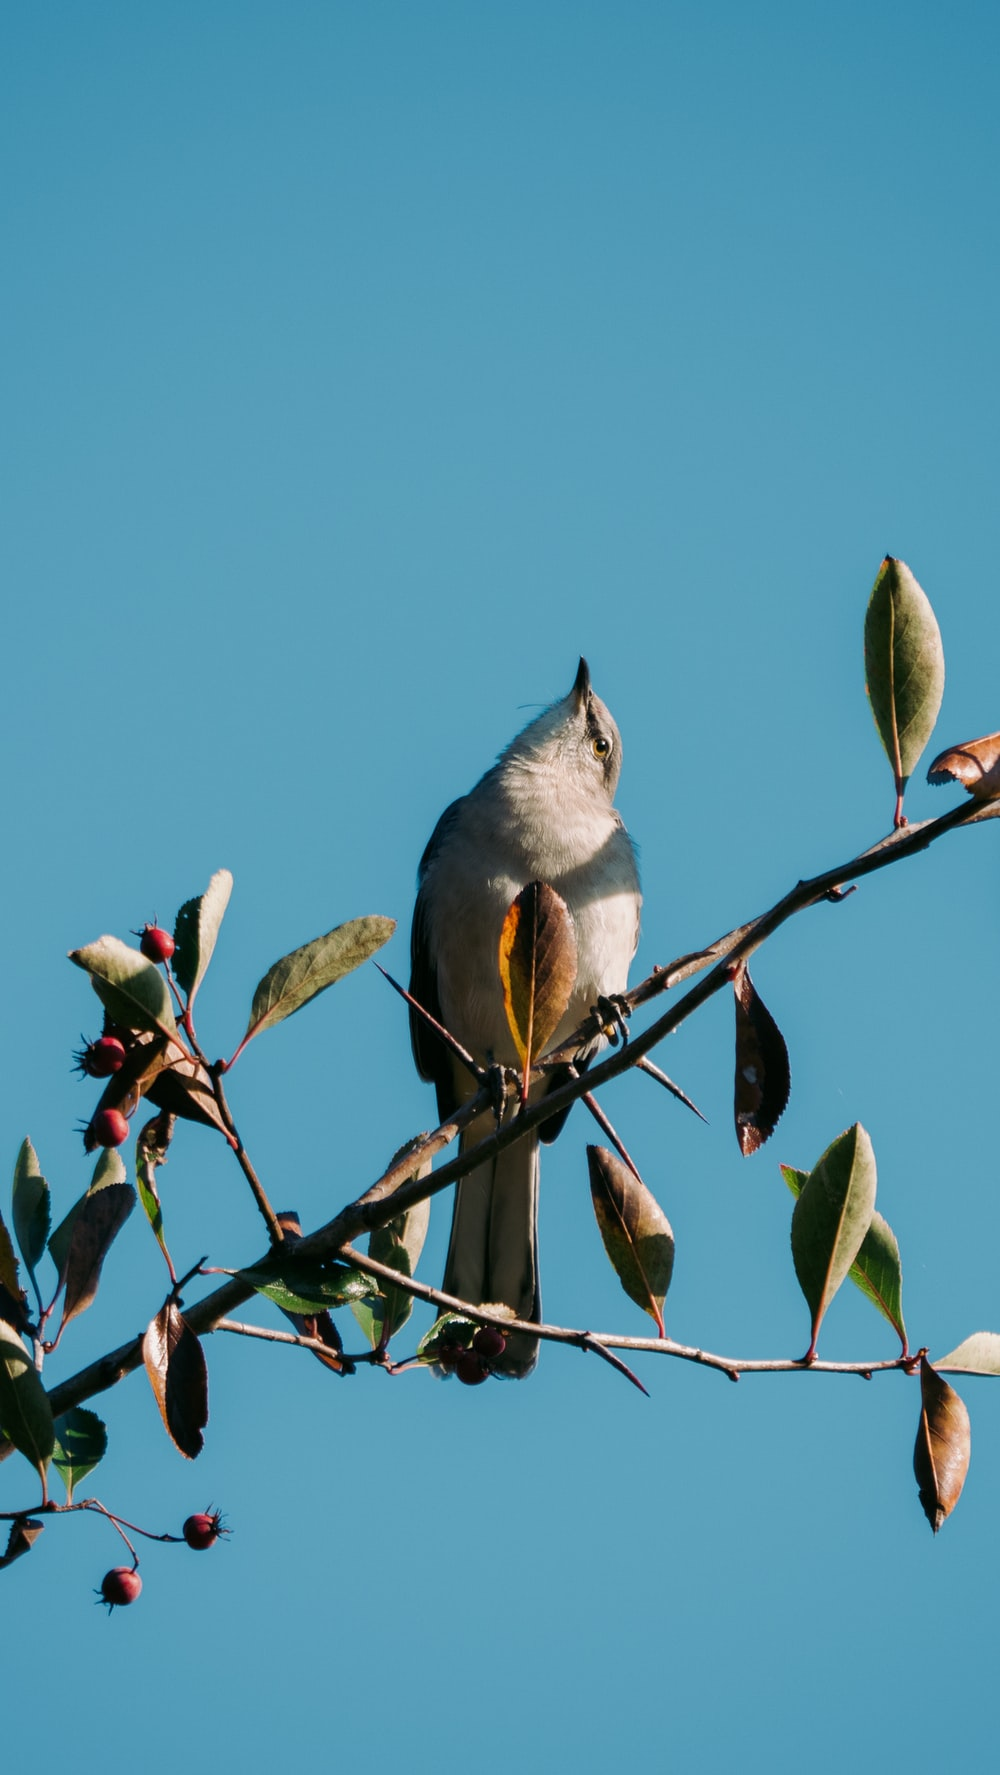 gray and white bird on tree branch during daytime